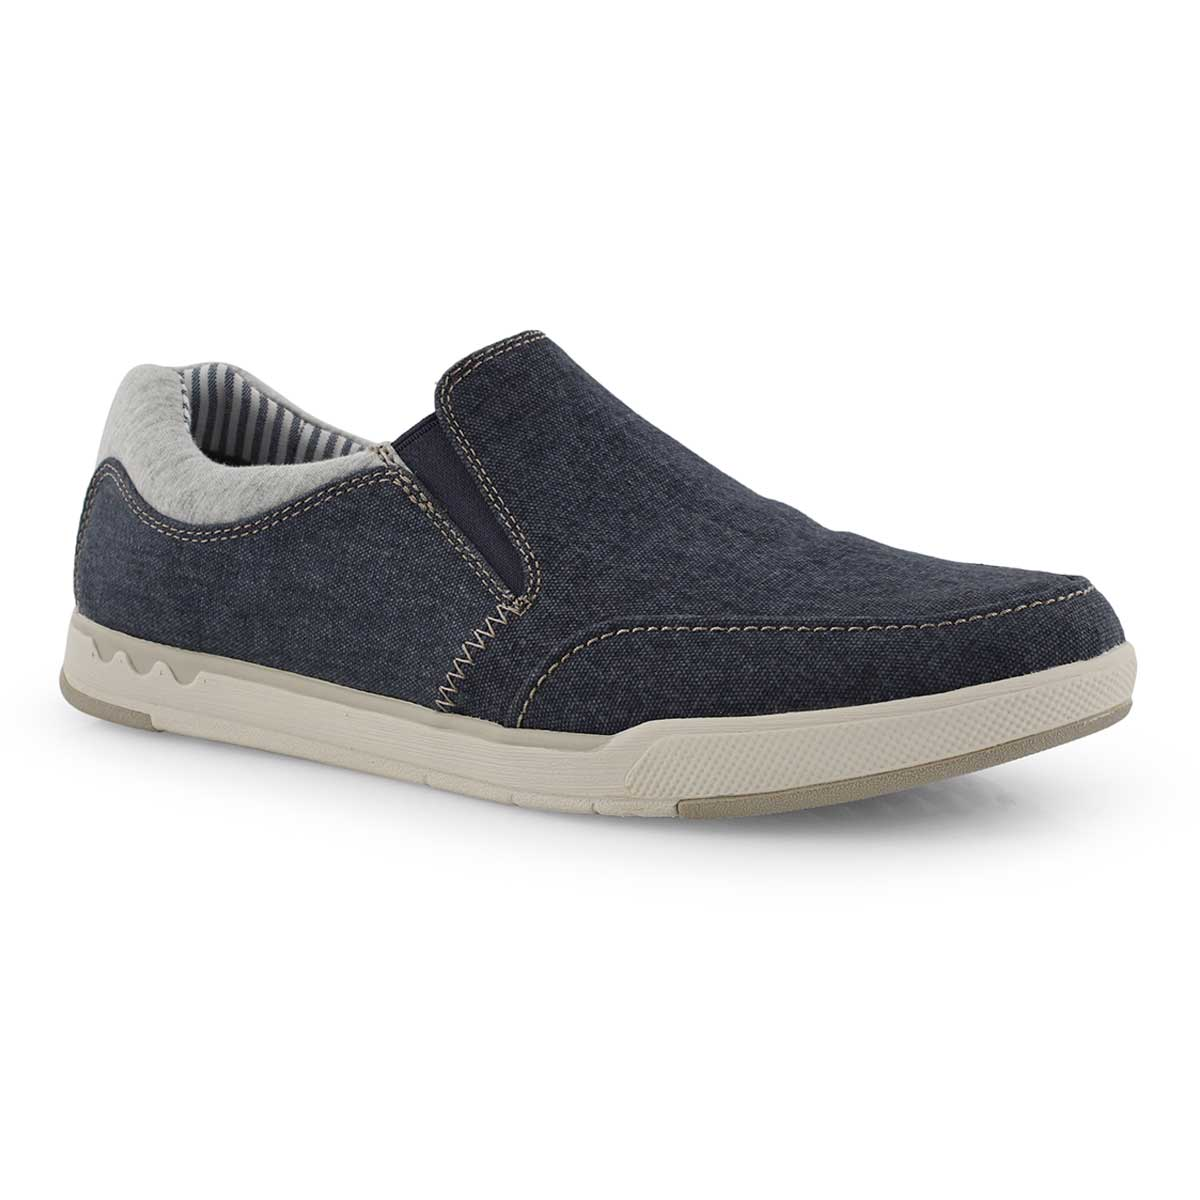 Mns Step Isle Slip navy casual shoe